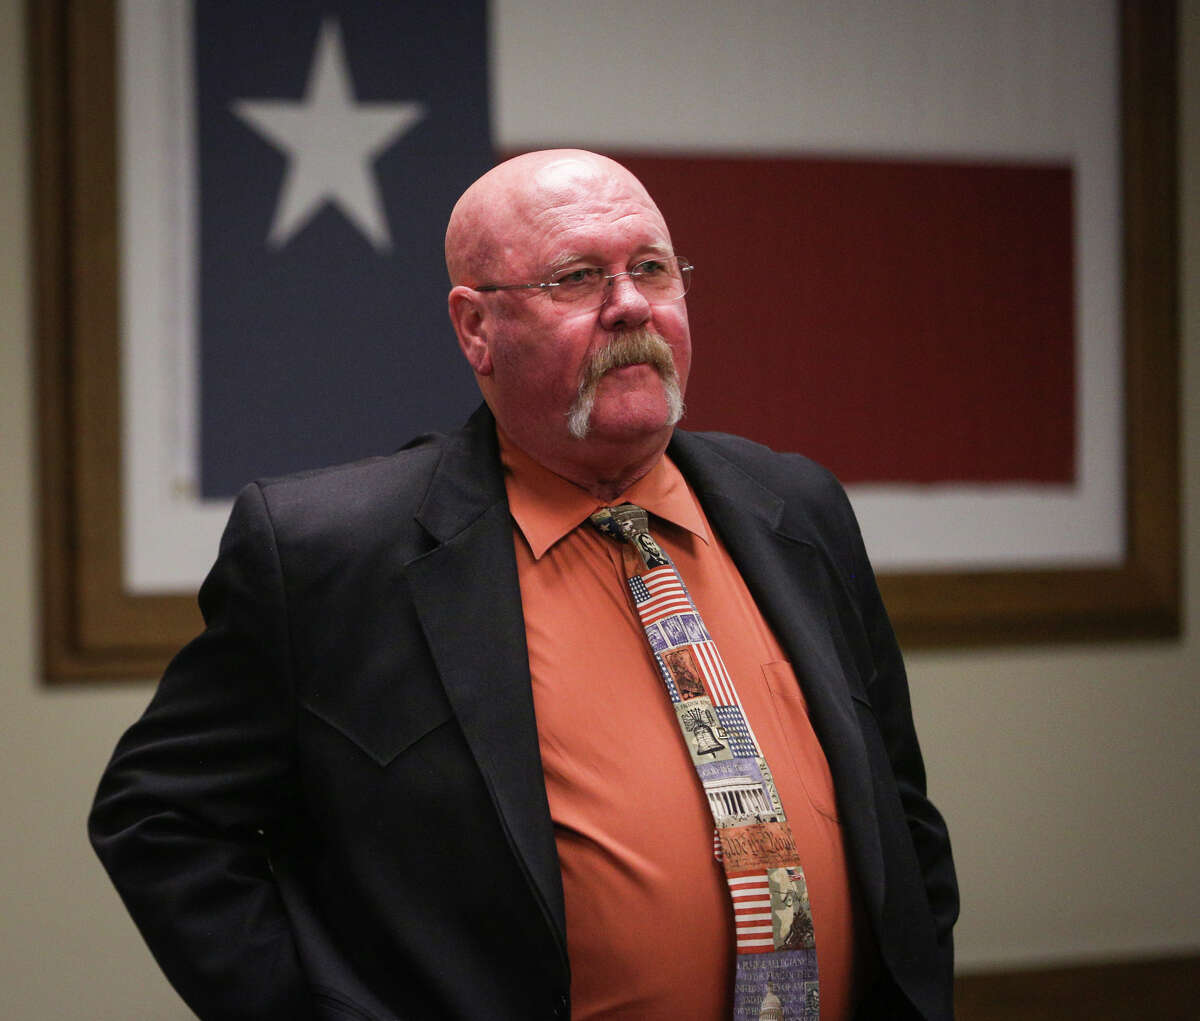 Precinct 2 Commissioner Charlie Riley enters the 221st District Court before the trial on Monday, April 3, 2017.